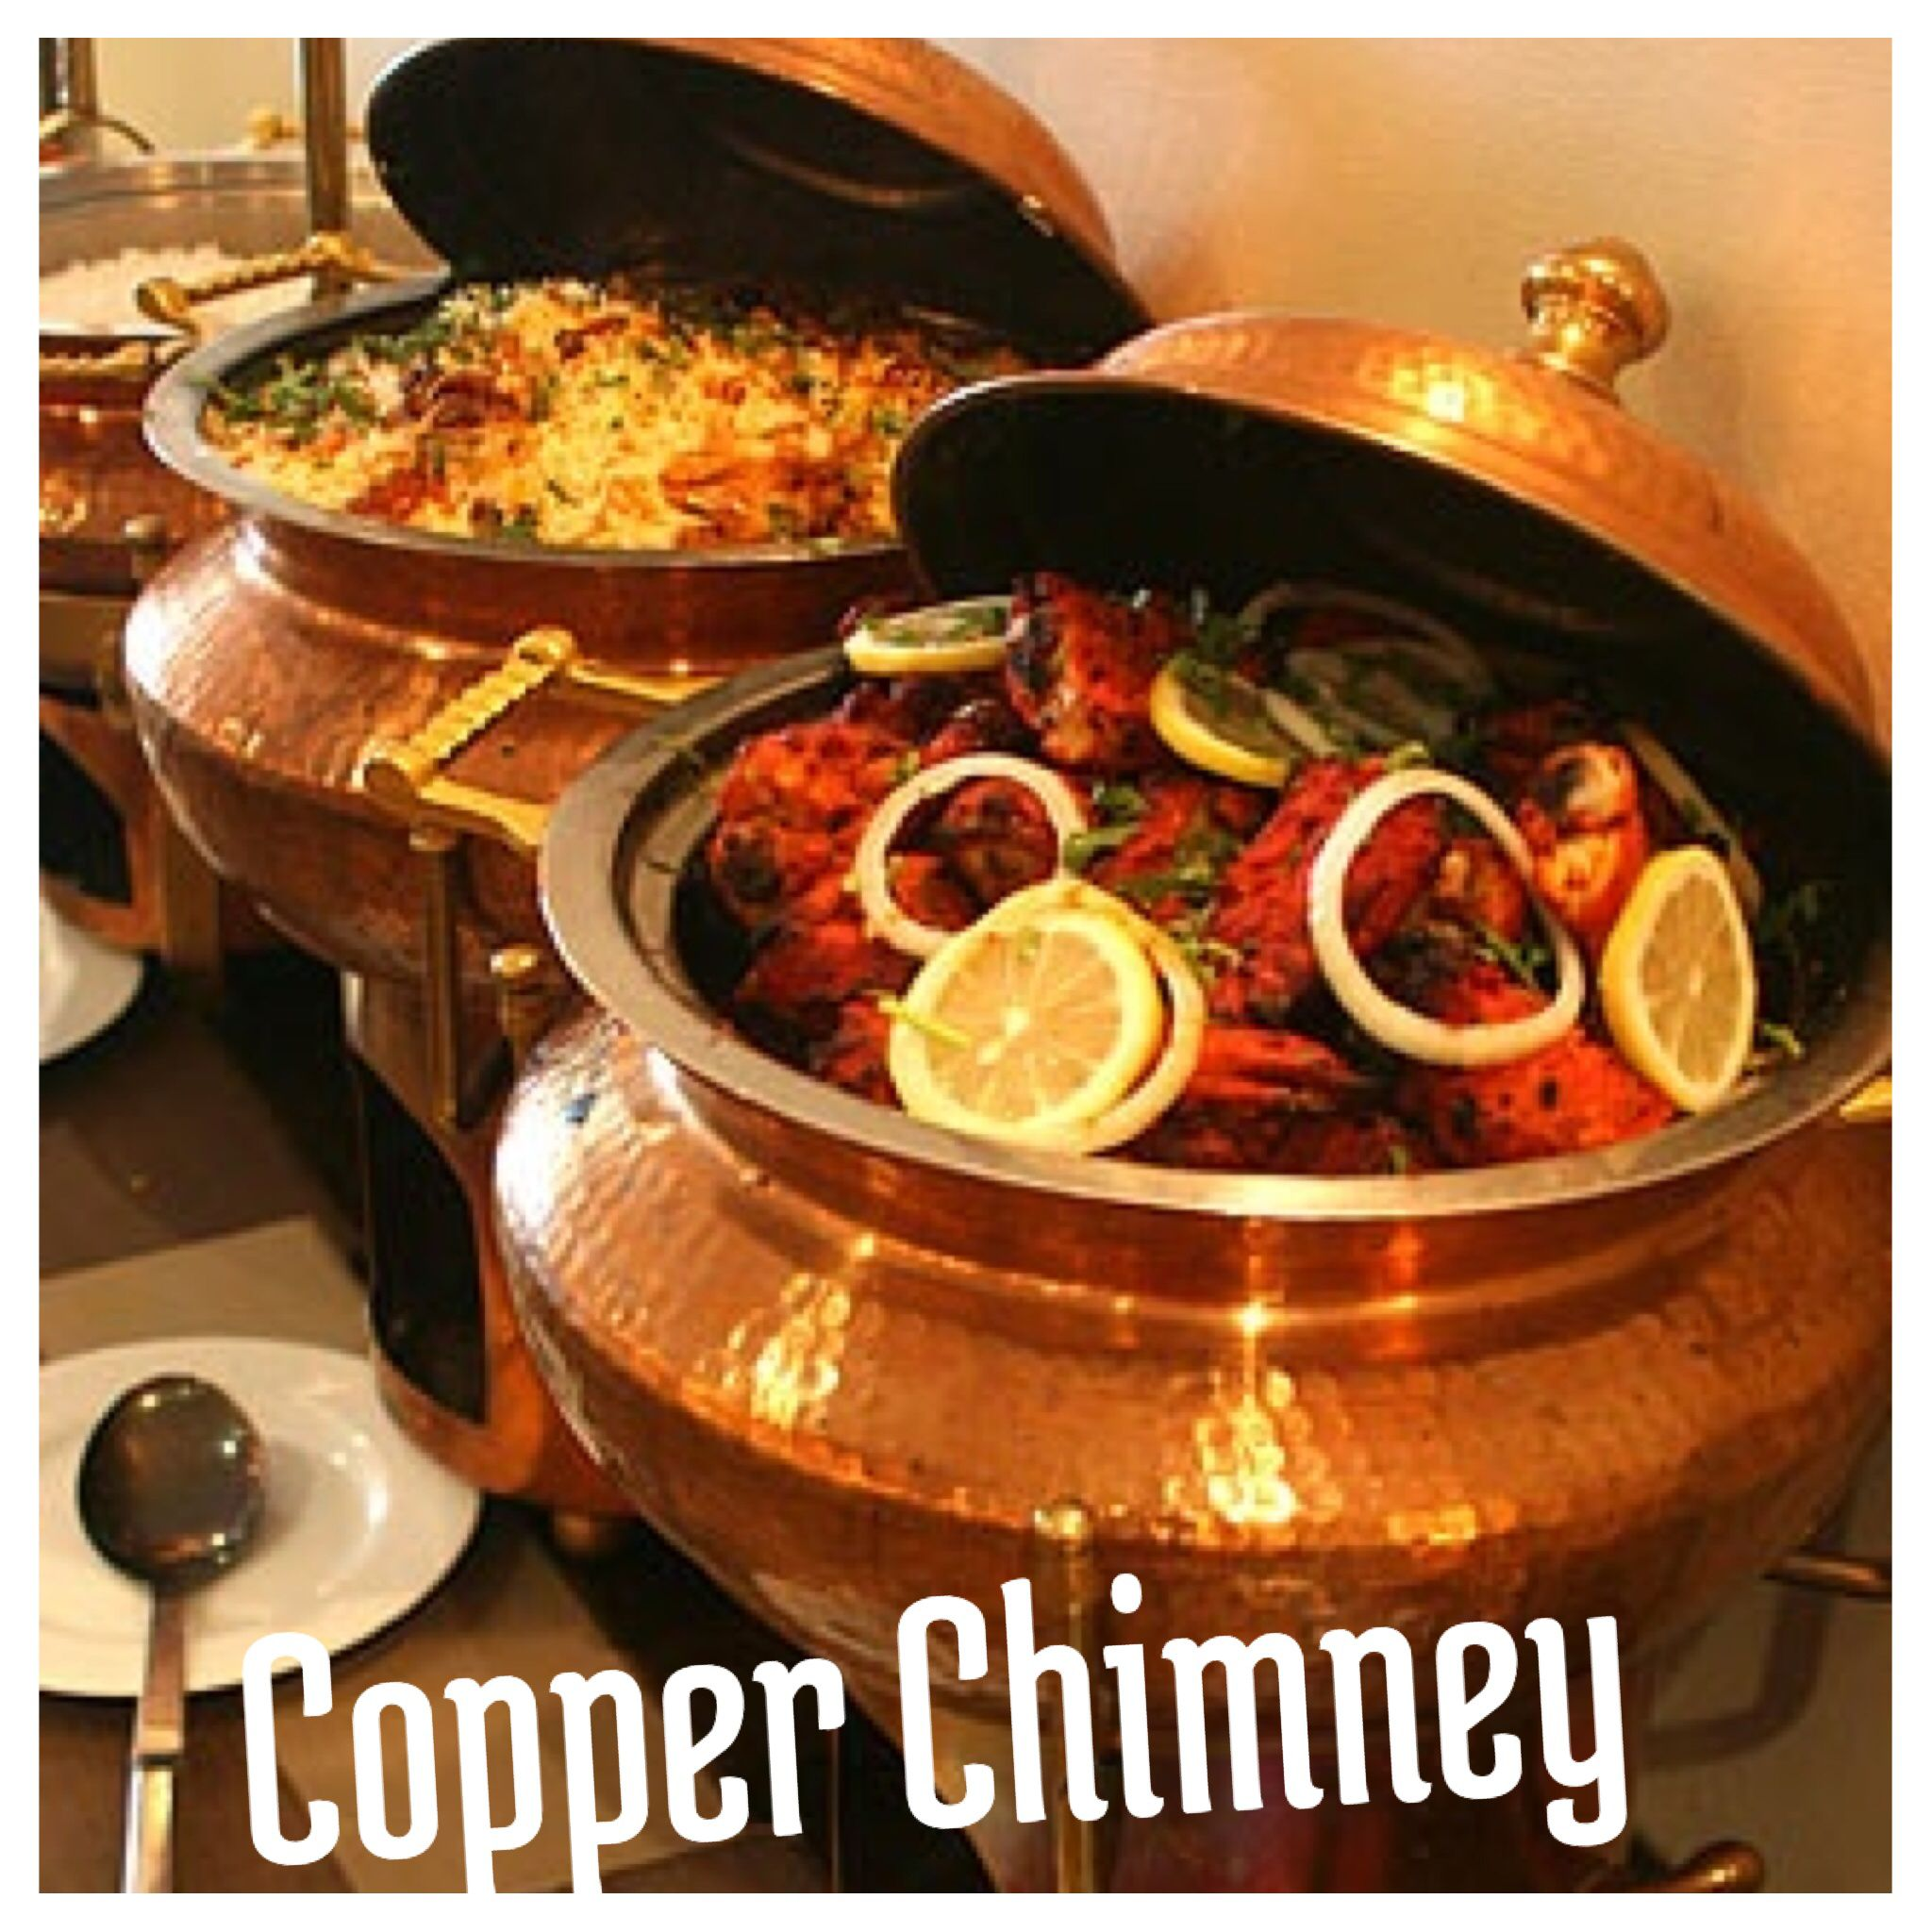 Expand your flavor Palate! Visit Copper Chimney our newest Partner located at 126th E 28th St in NYC!